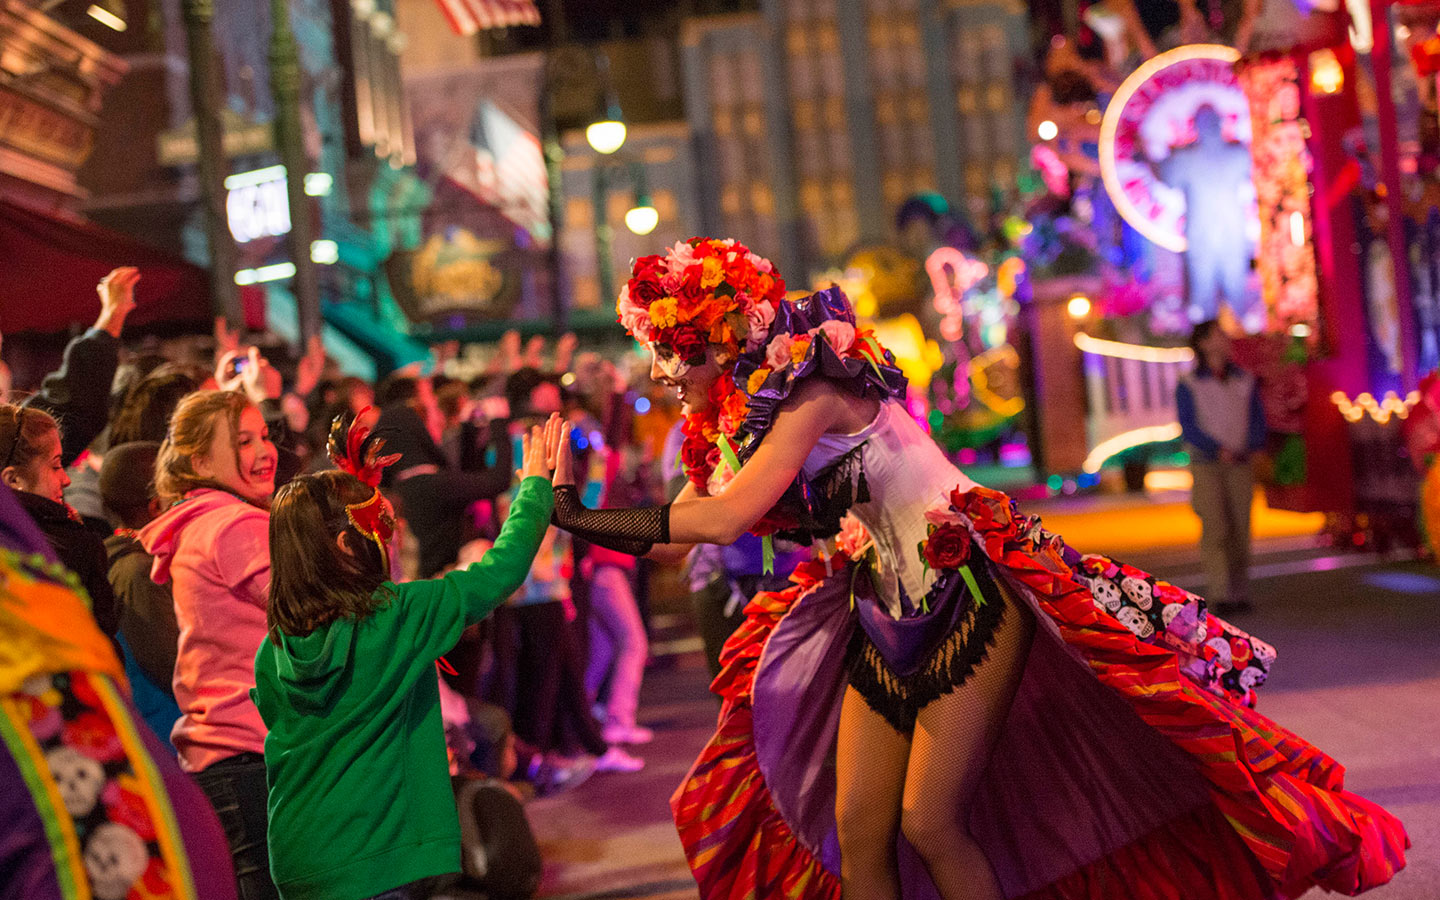 Dance along with masked characters and catch beads during Universal Orlando's Mardi Gras celebration